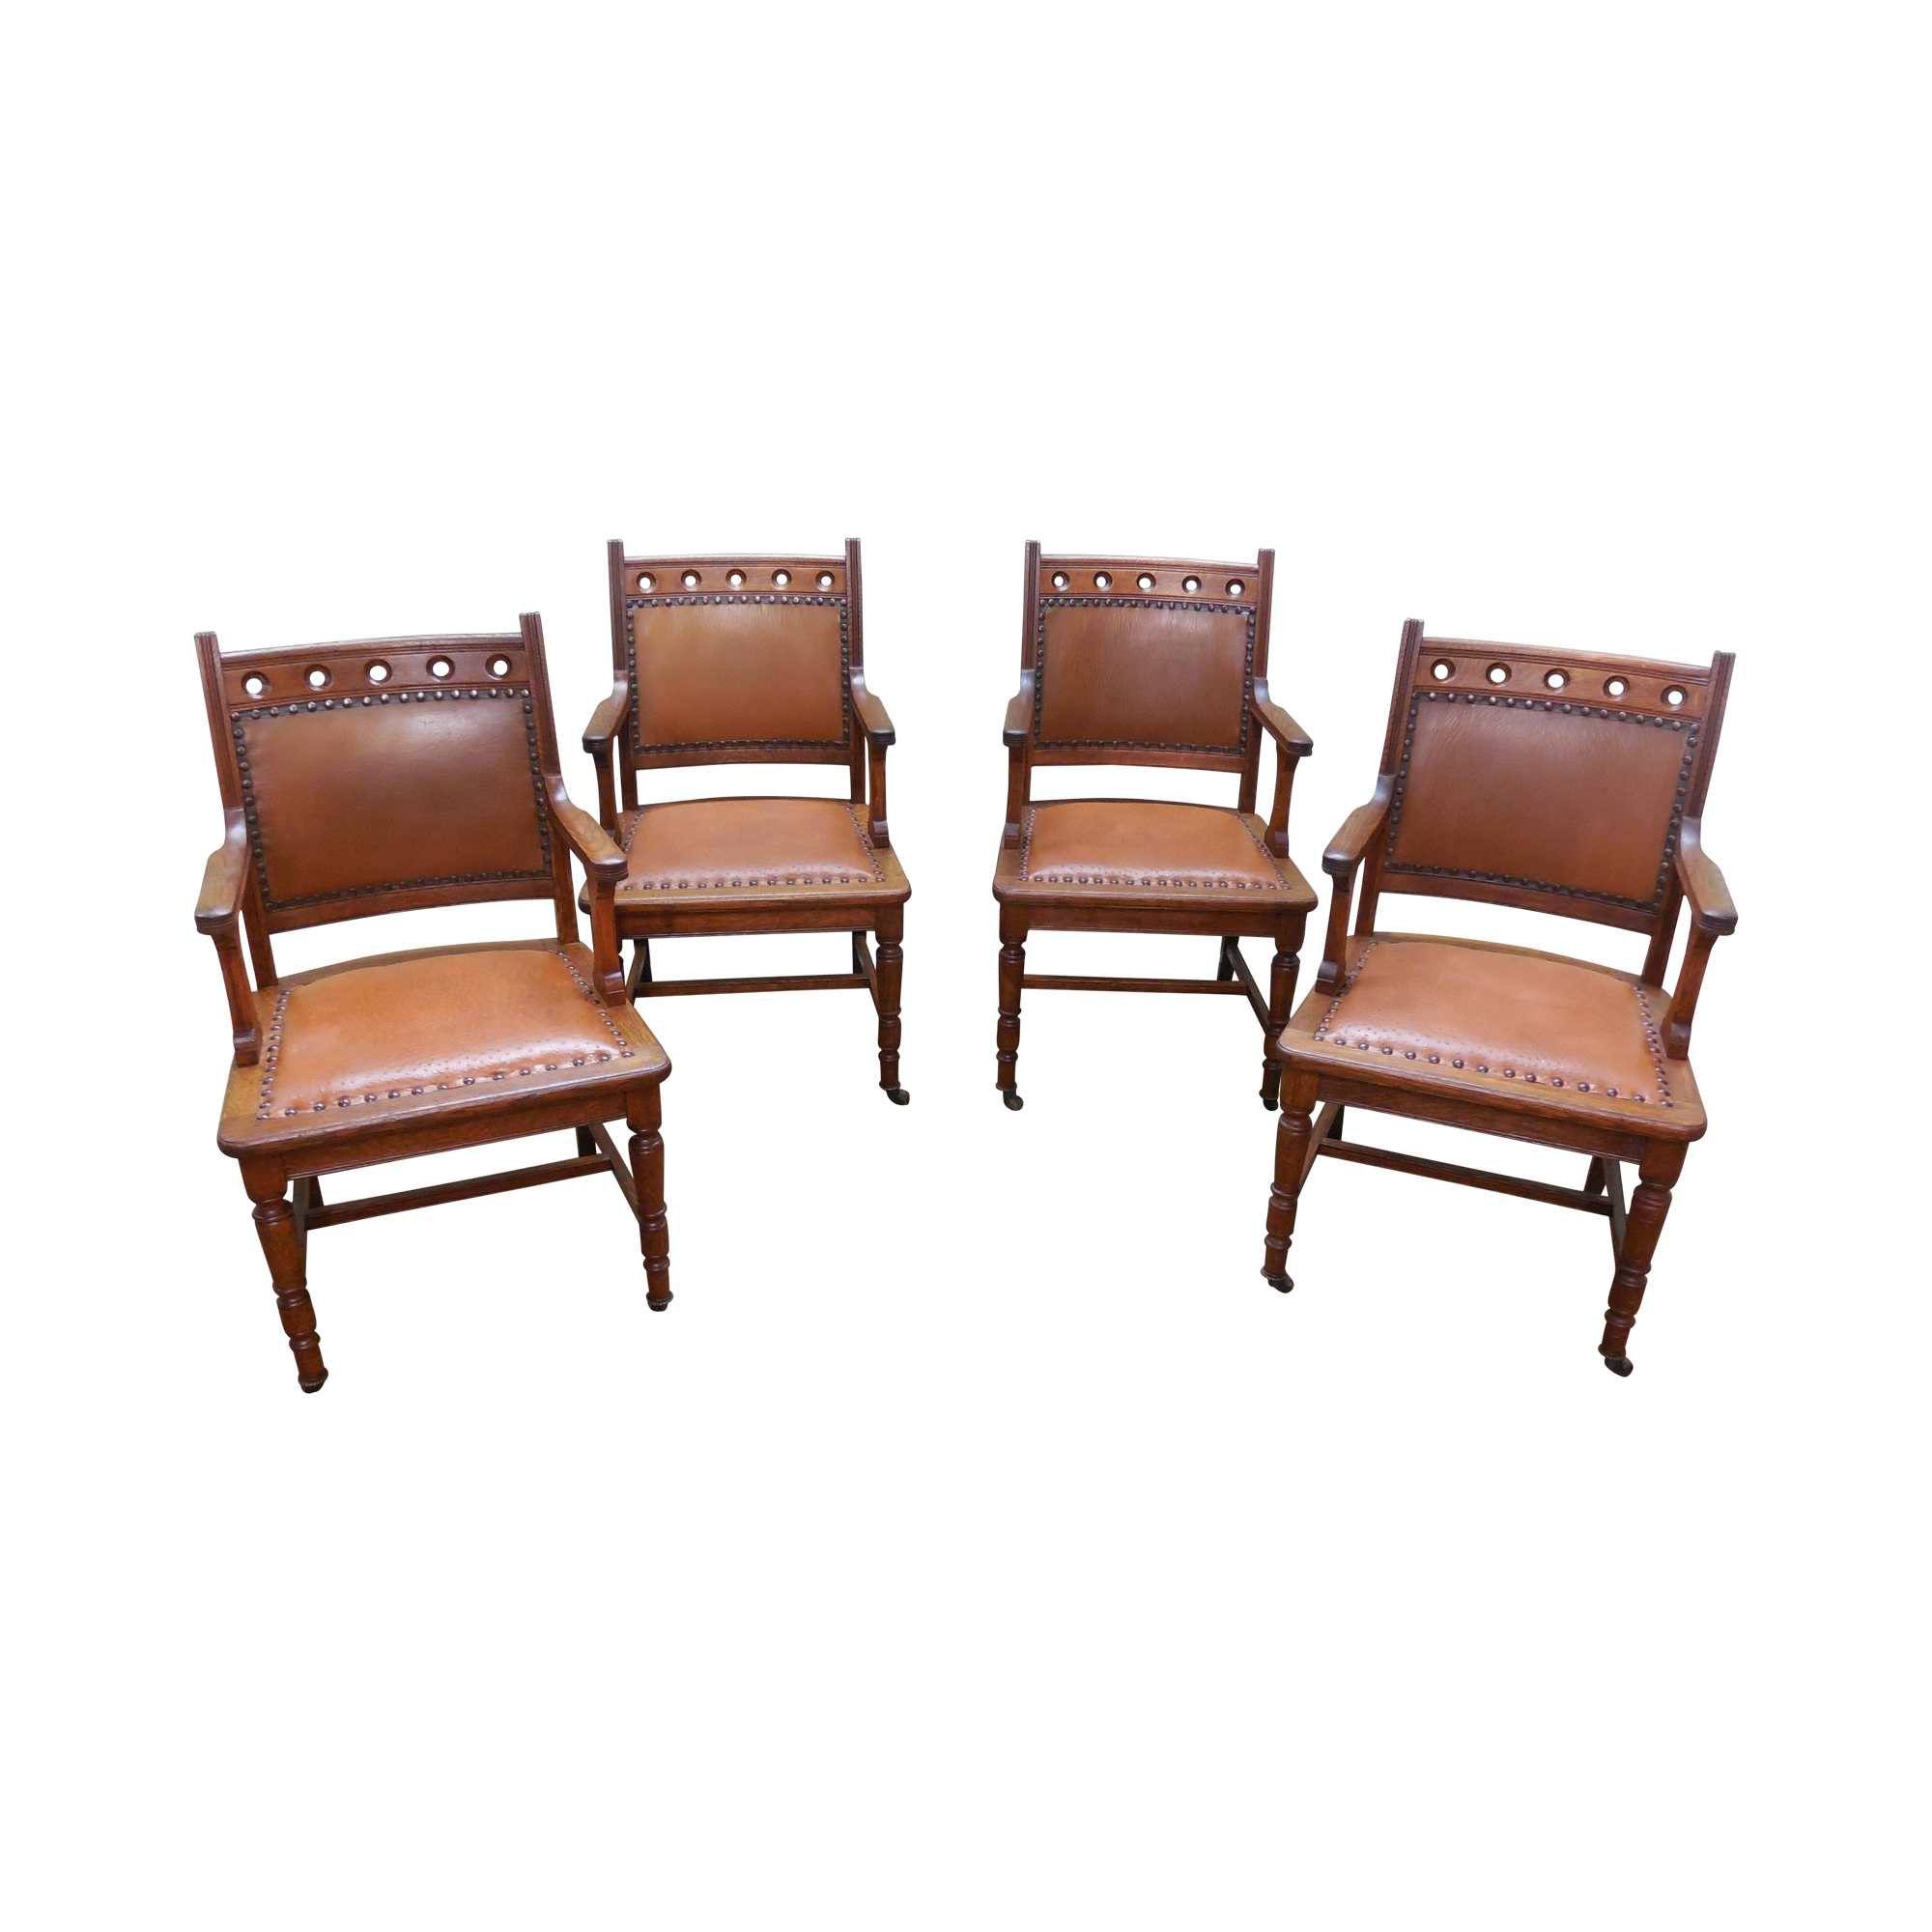 Antique victorian dining chairs - Image Of Antique Victorian Oak Dining Chairs Set Of 4